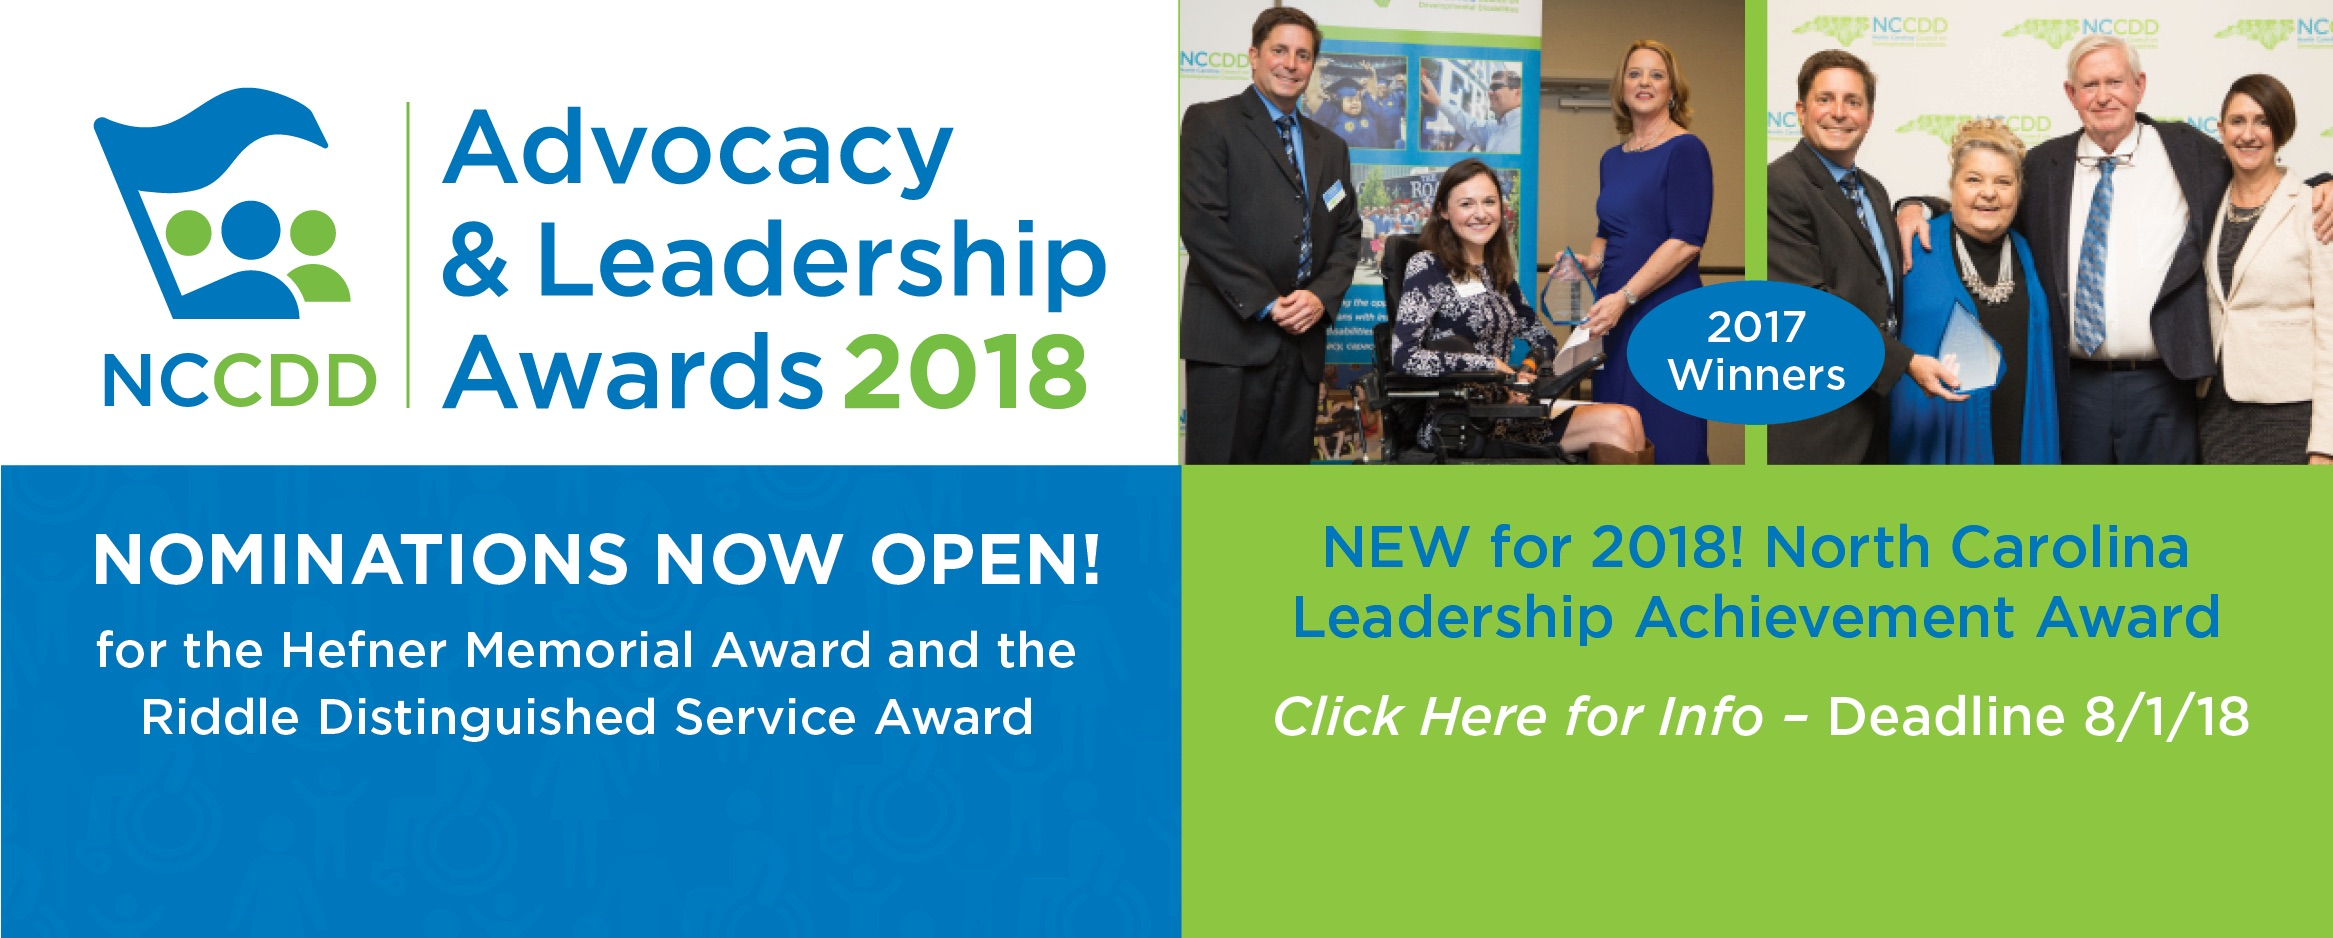 NCCDD Advocacy Leadership Awards 2018